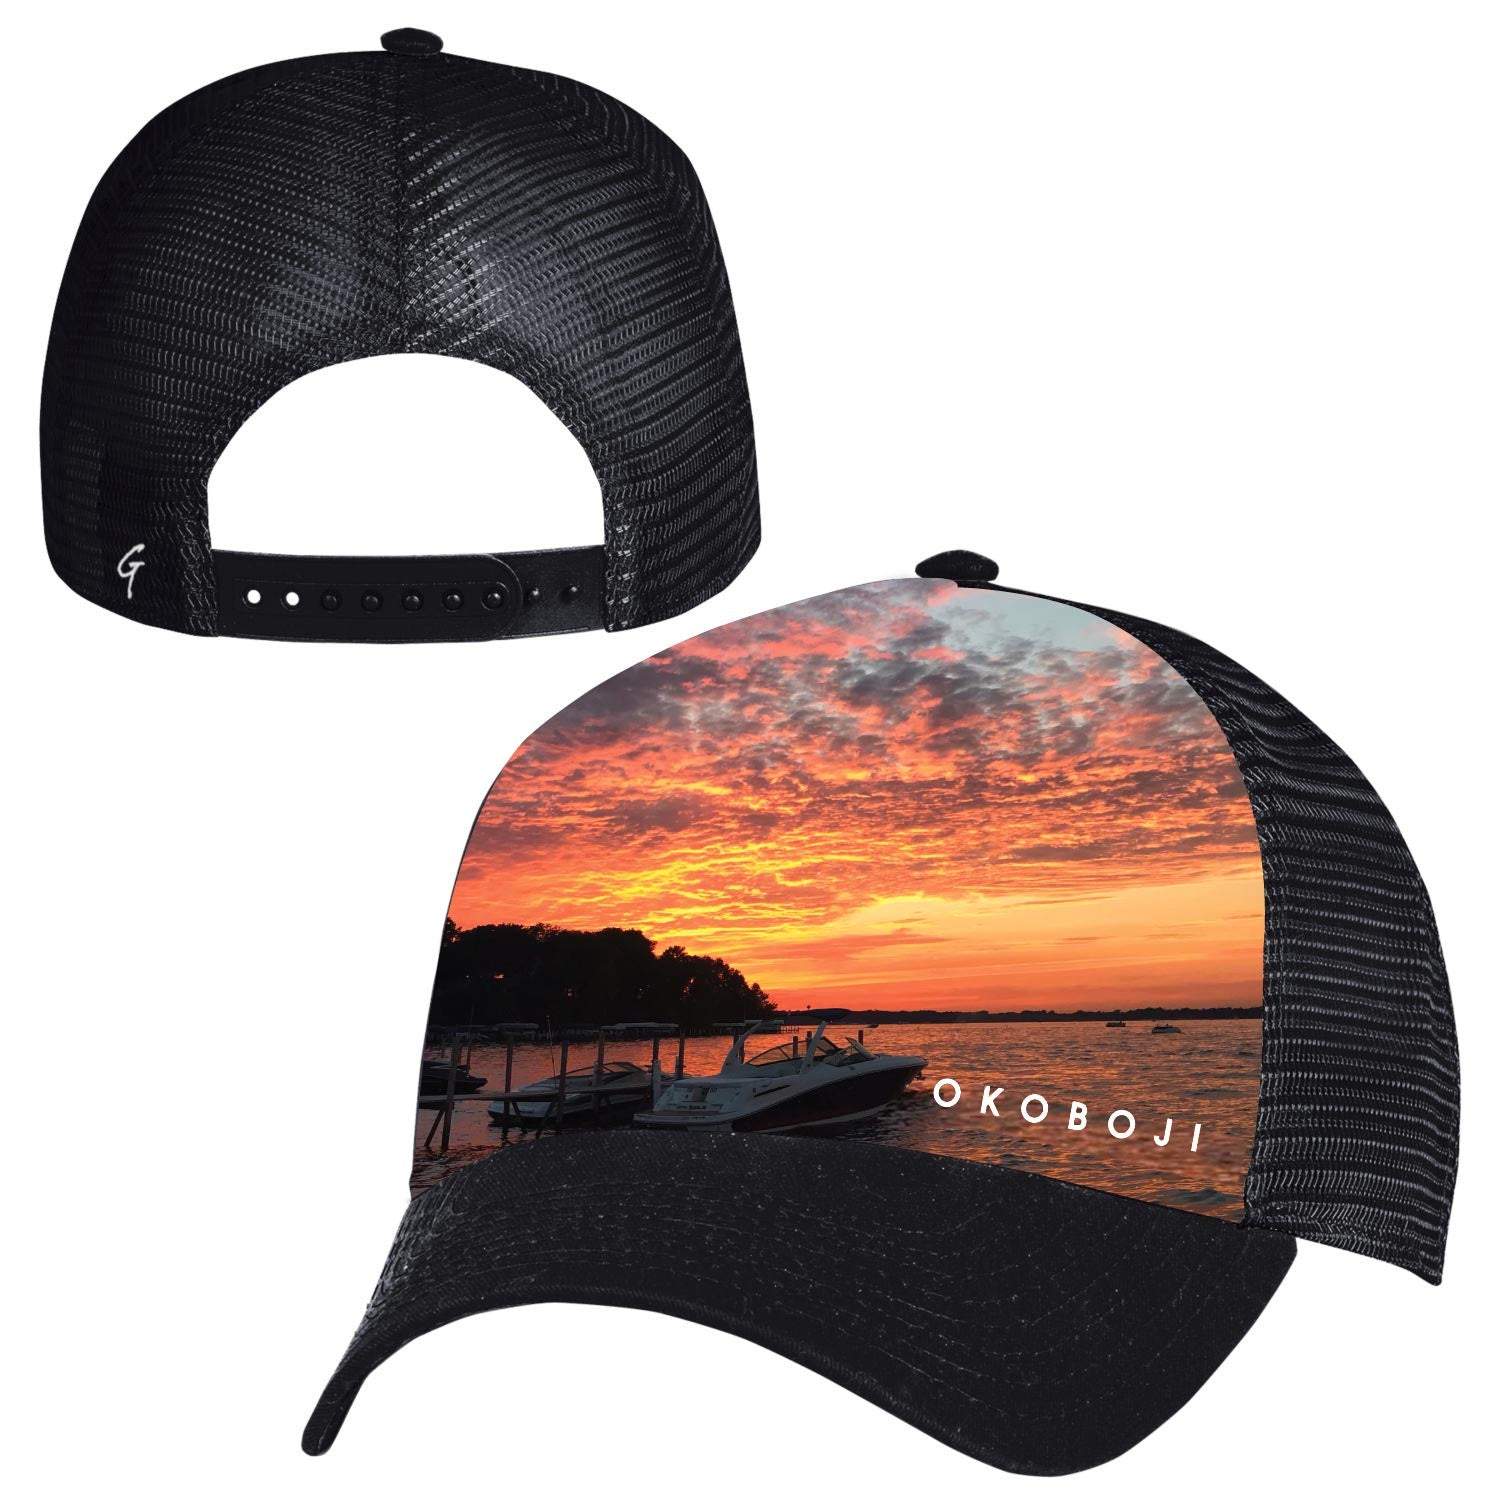 OKOBOJI SUNSET TRUCKER